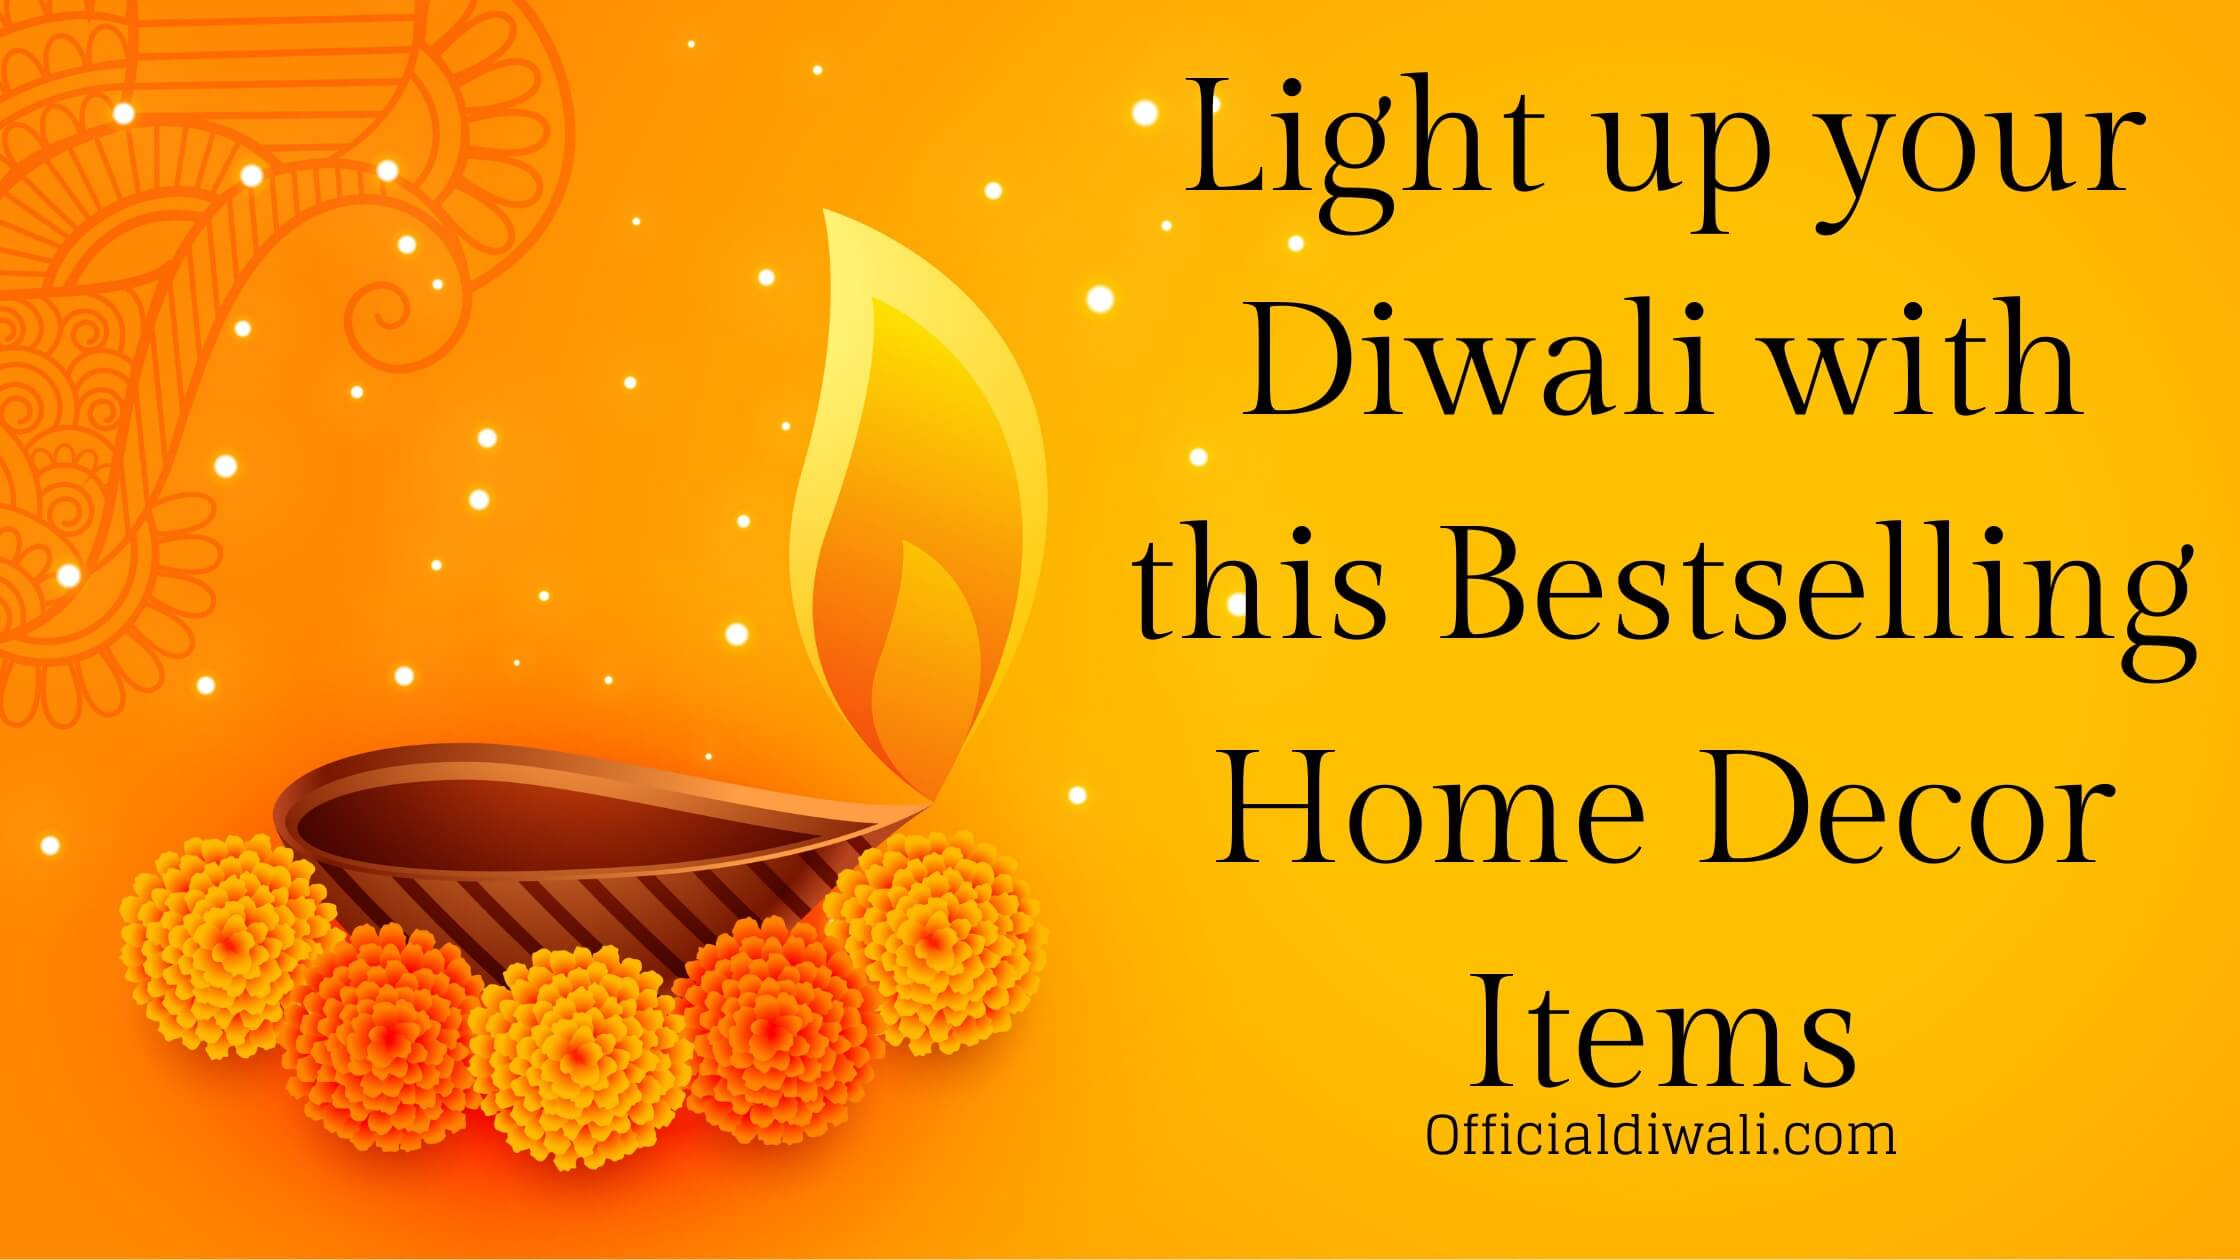 Light up your Diwali with this Bestselling Diwali Home Decor Items